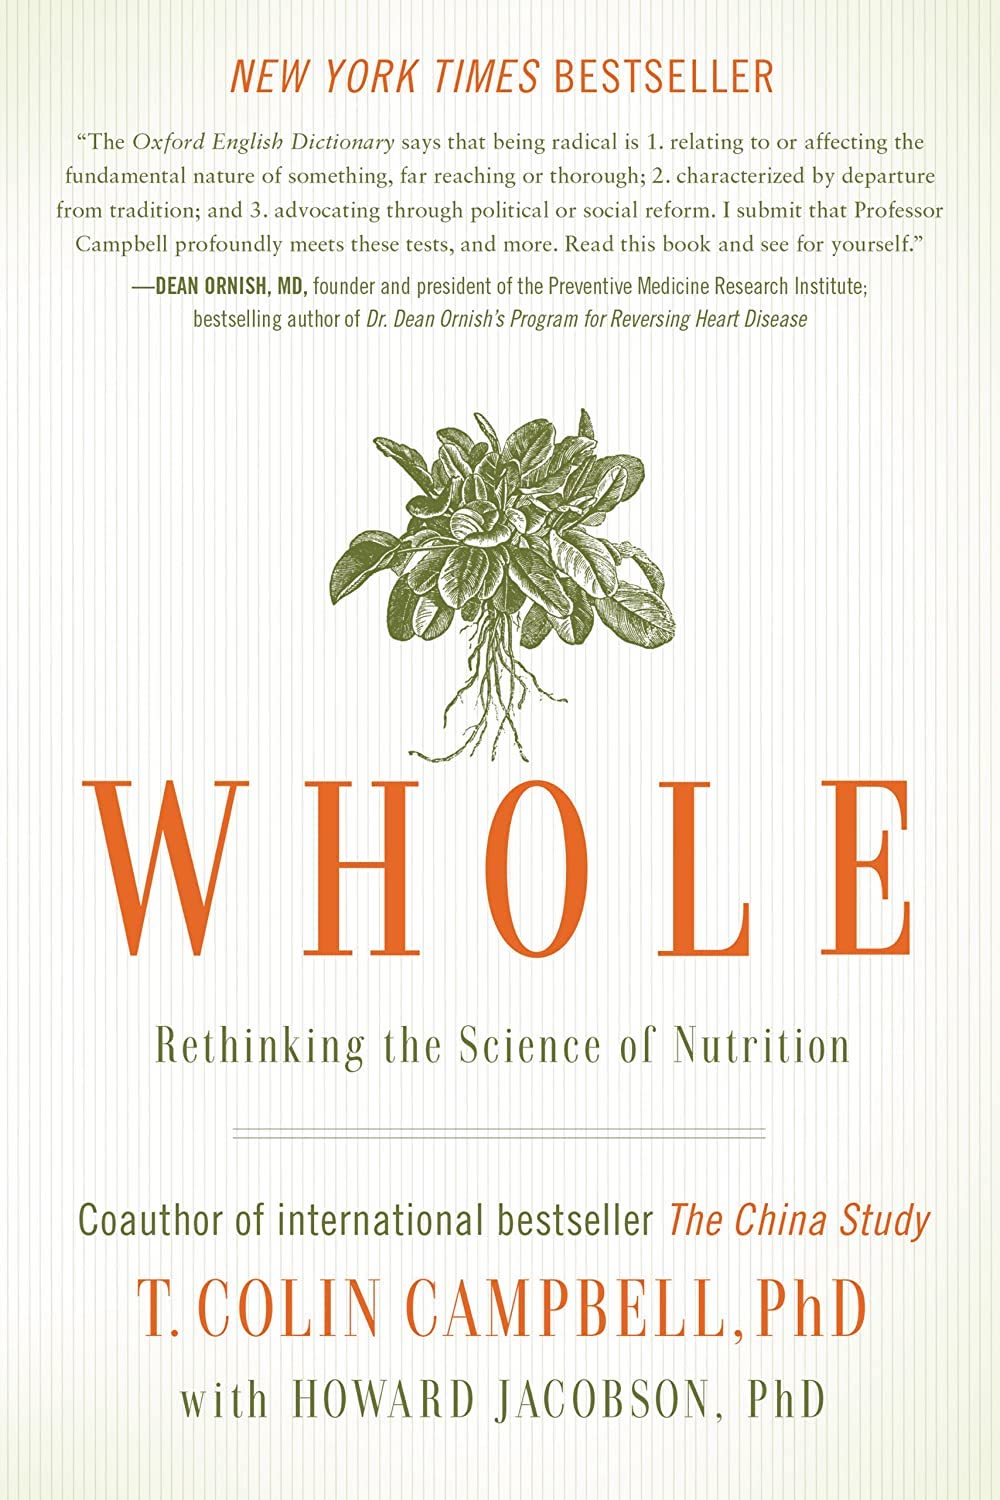 5 of the Best Books for Switching to Plant-Based Eating